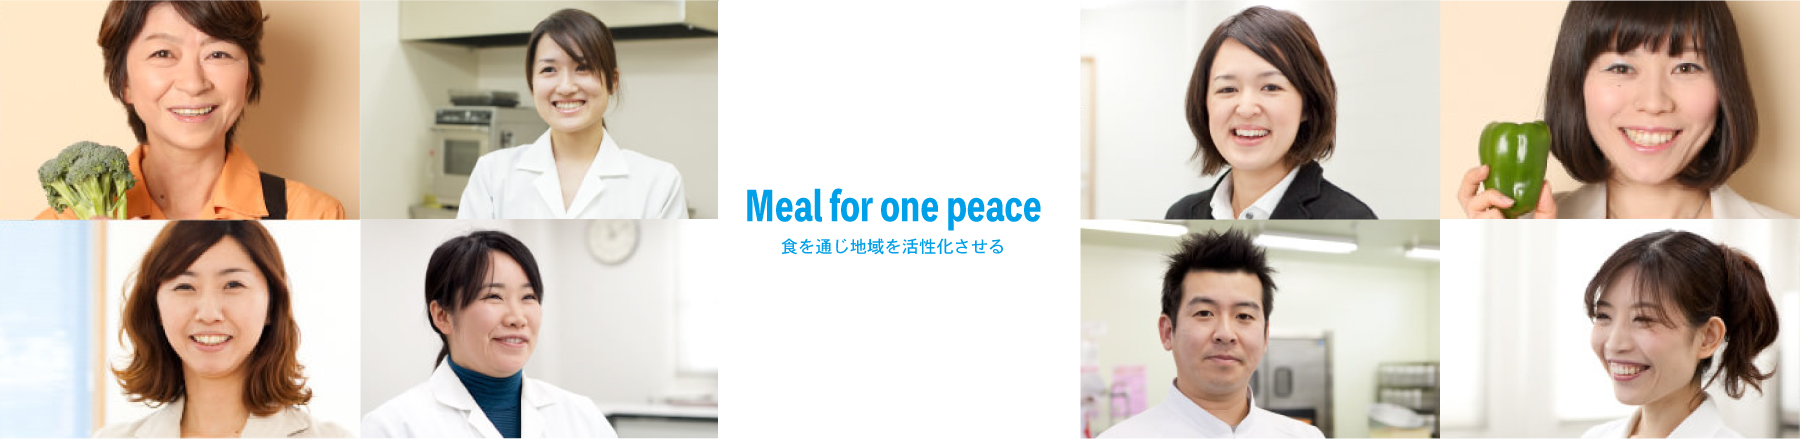 Meal for one peace